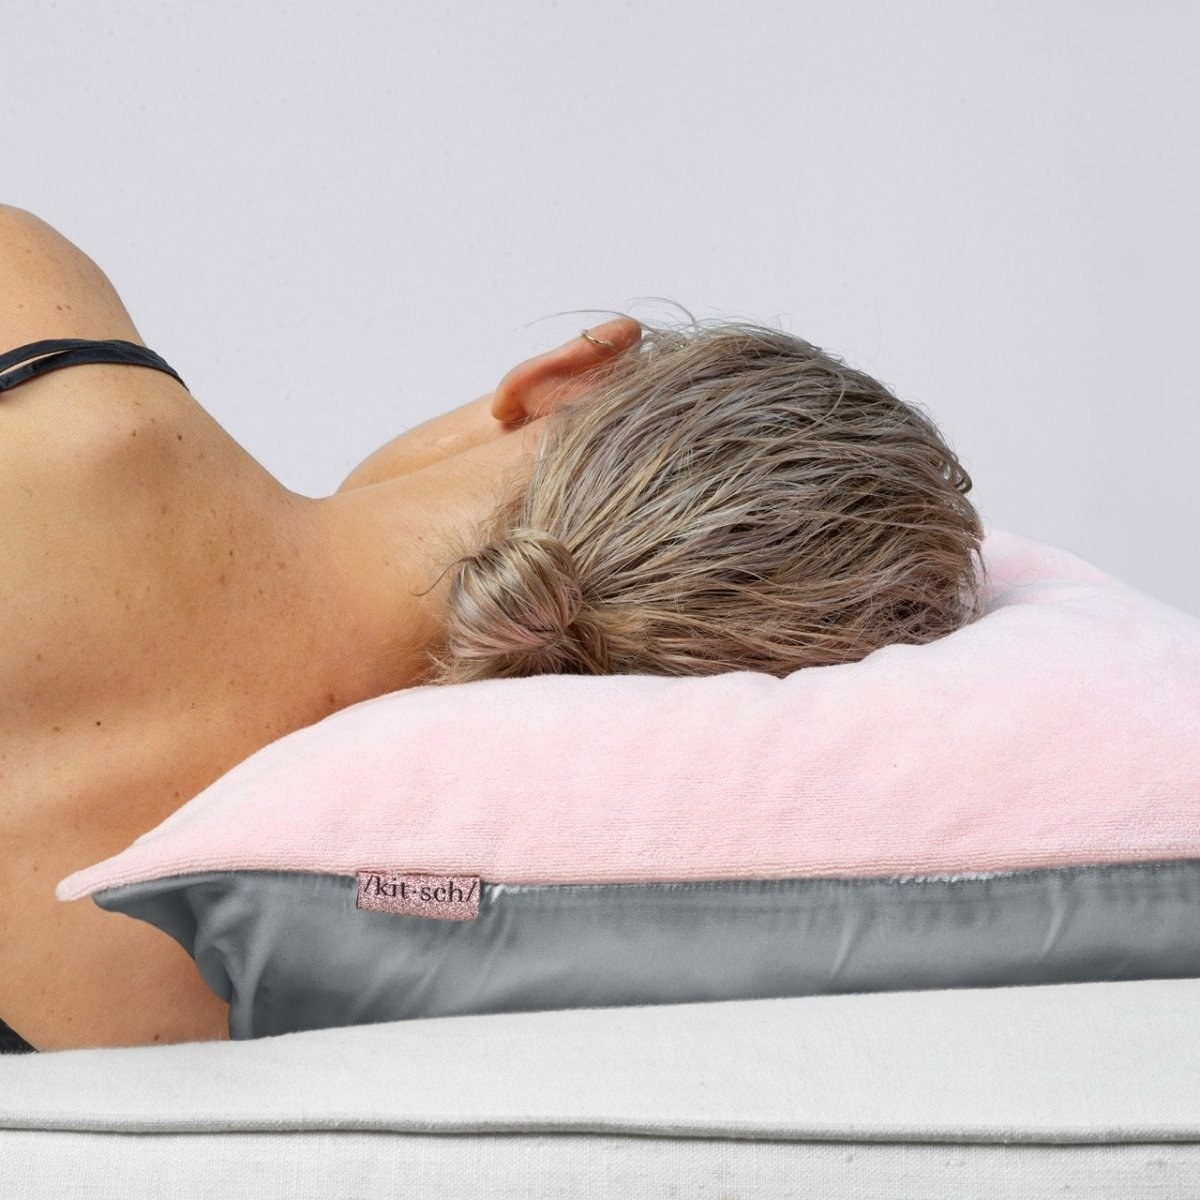 Model sleeping on a pink and grey pillowcase